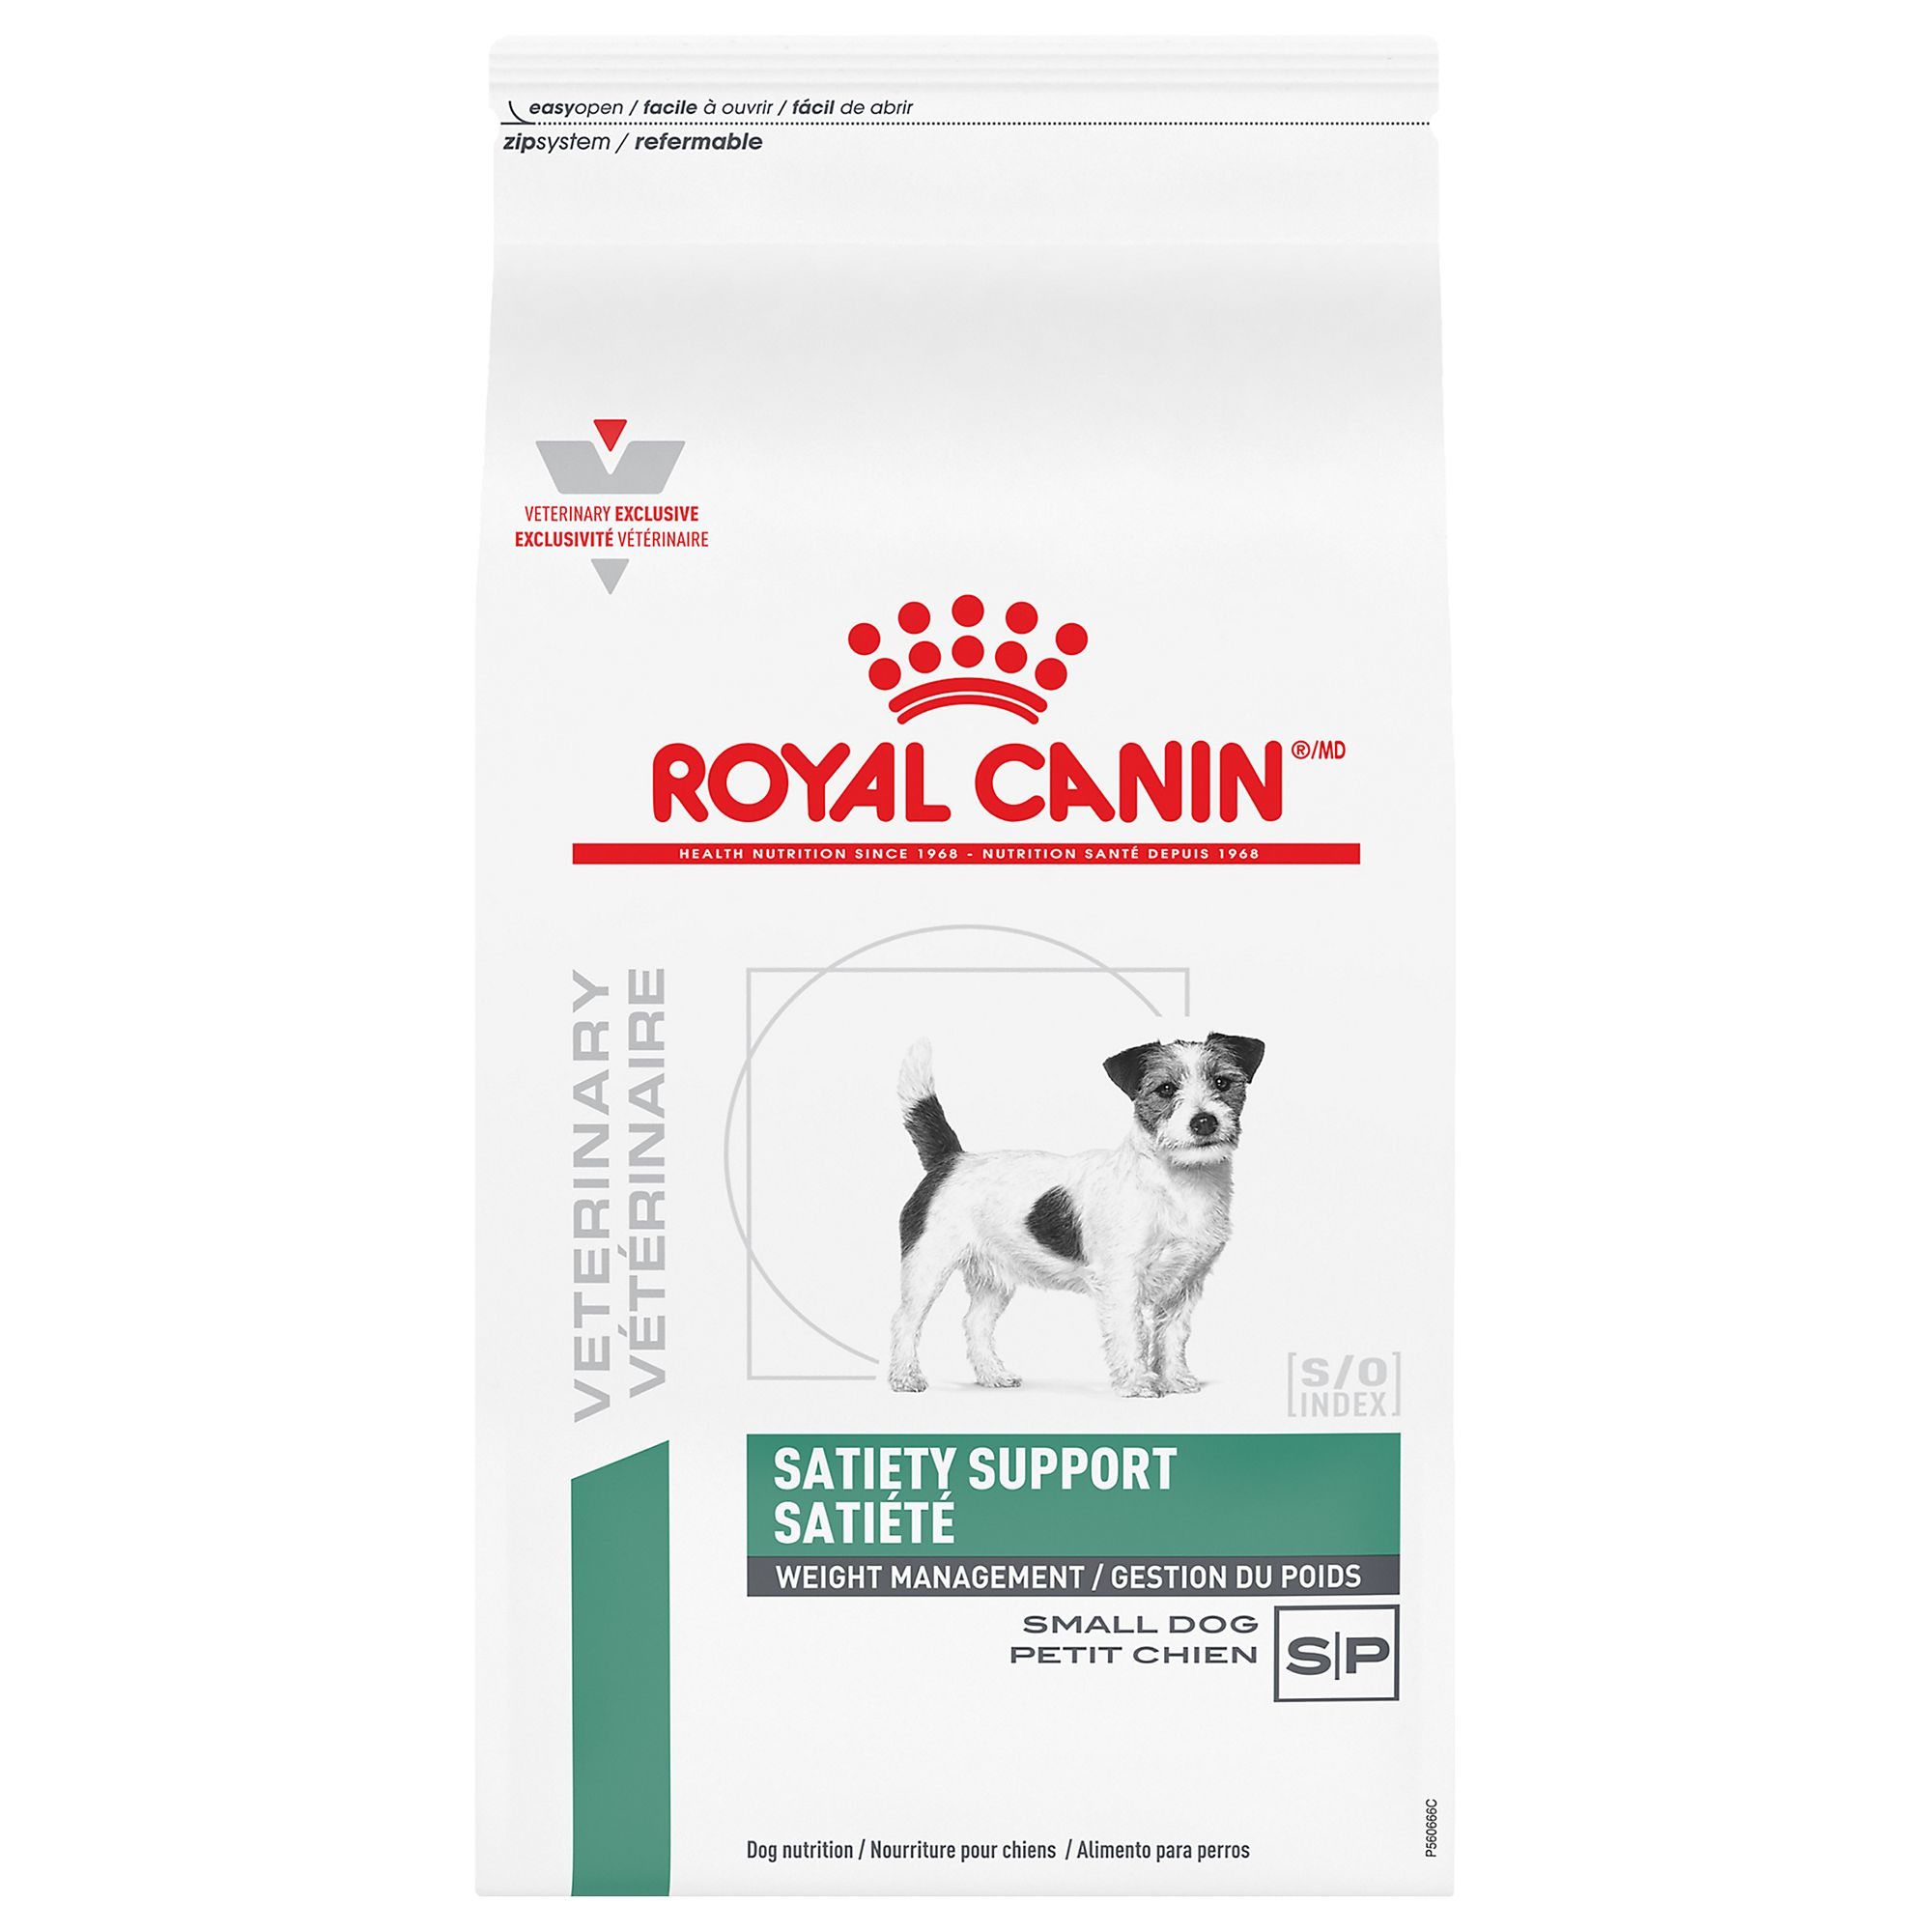 Royal Canin Dog Food Coupons Petsmart